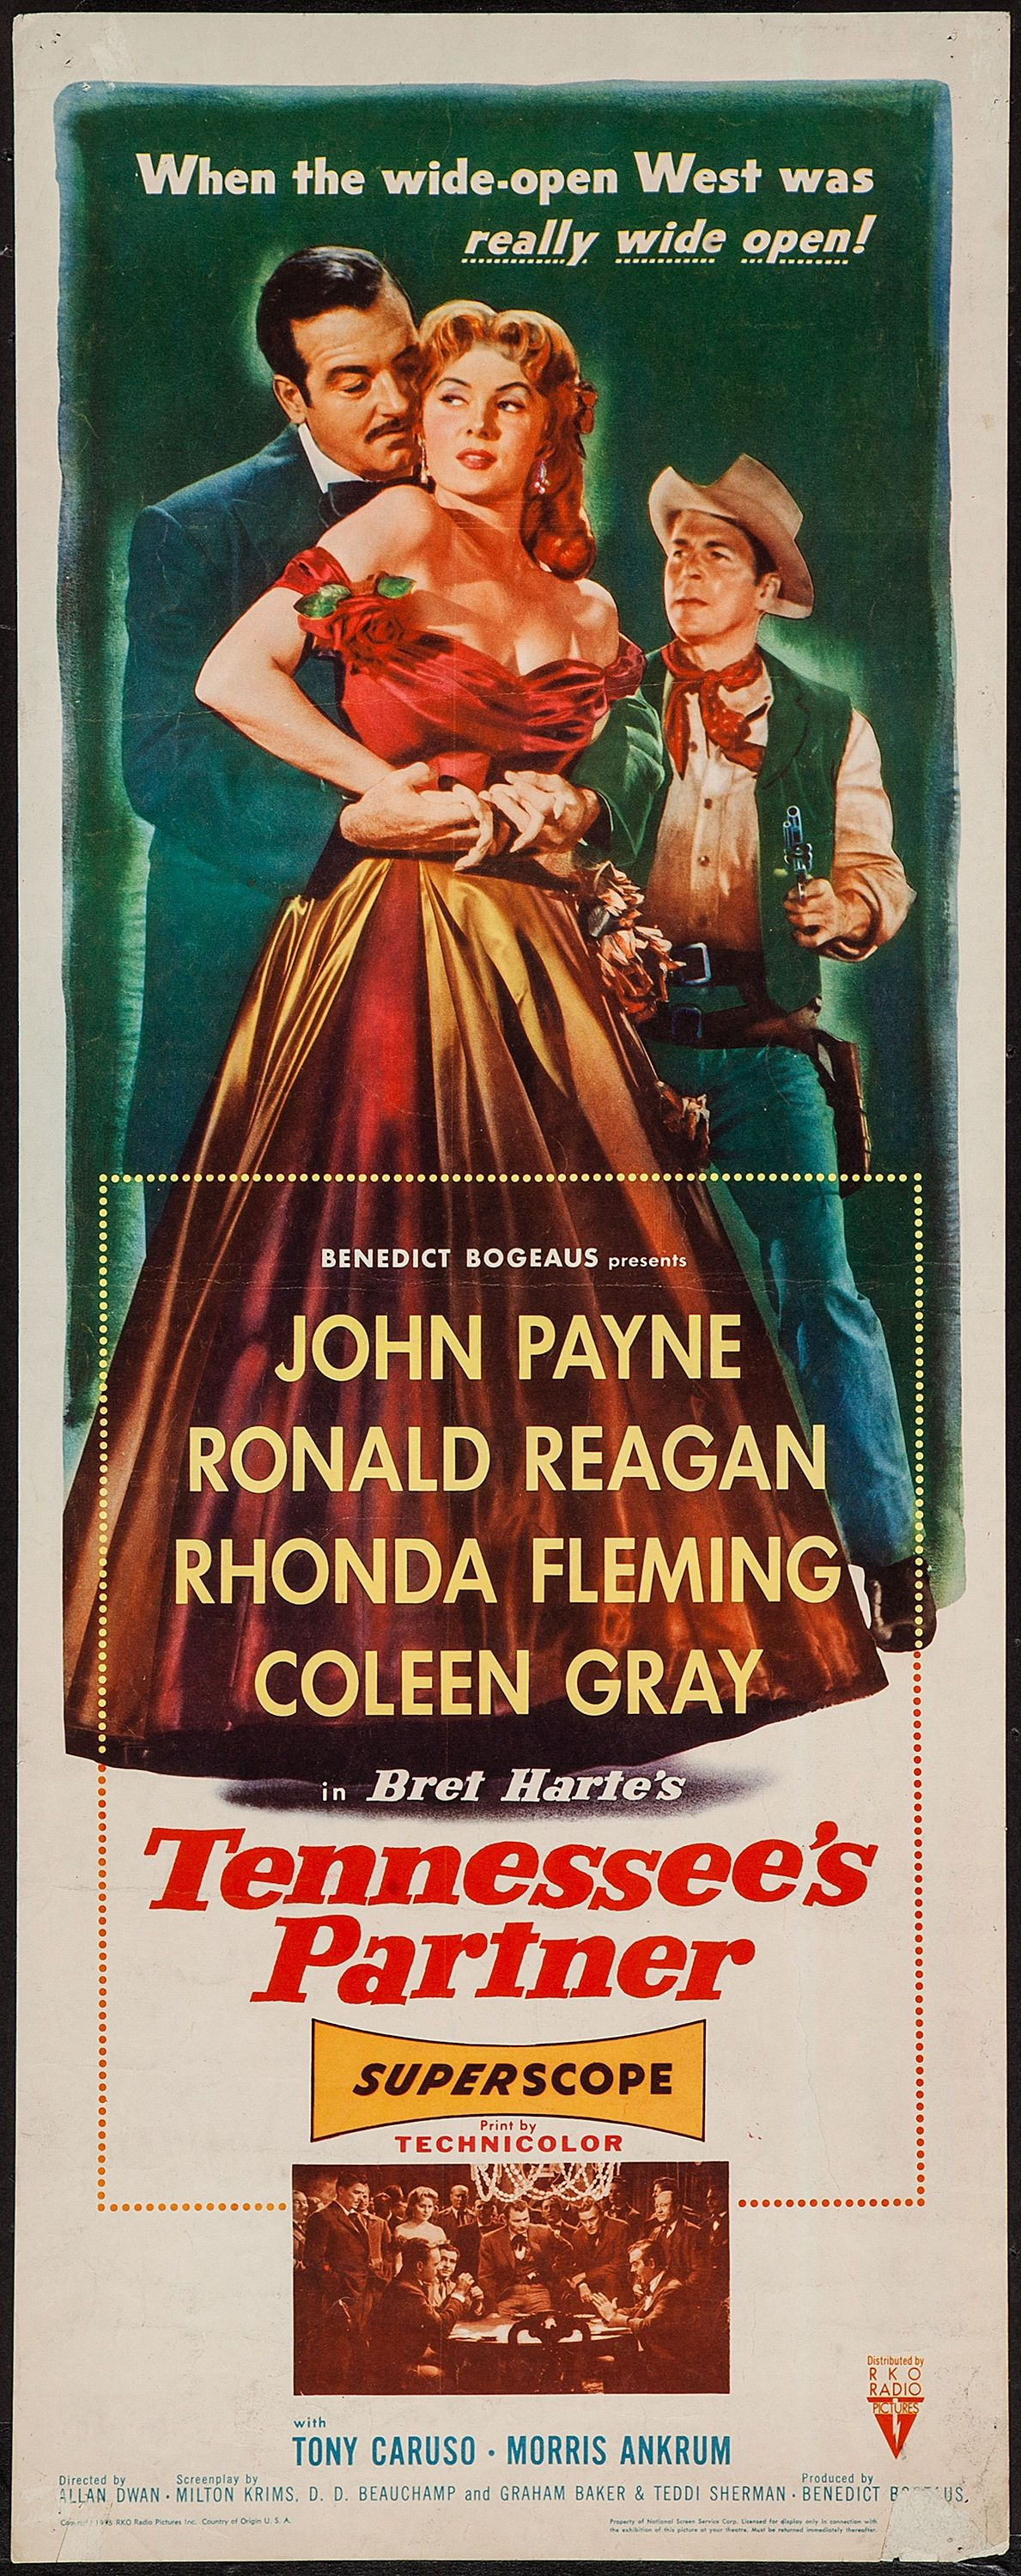 Tennessee's Partner (1955) Stars: John Payne, Ronald Reagan, Rhonda Fleming, Coleen Gray, Anthony Caruso ~ Director: Allan Dwan